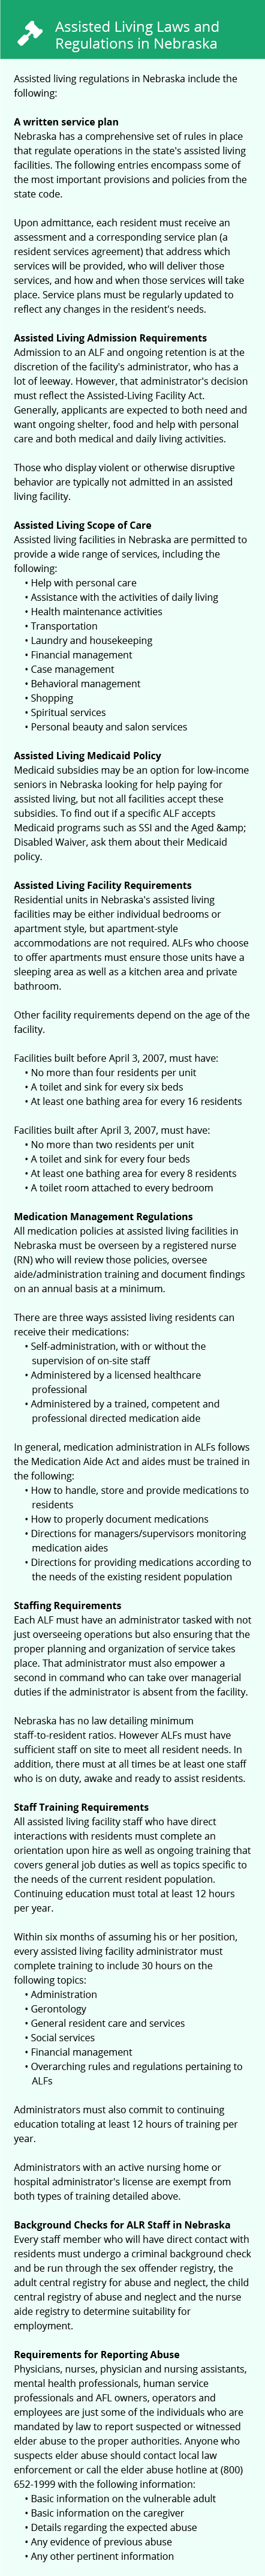 Laws and Regulations in Nebraska